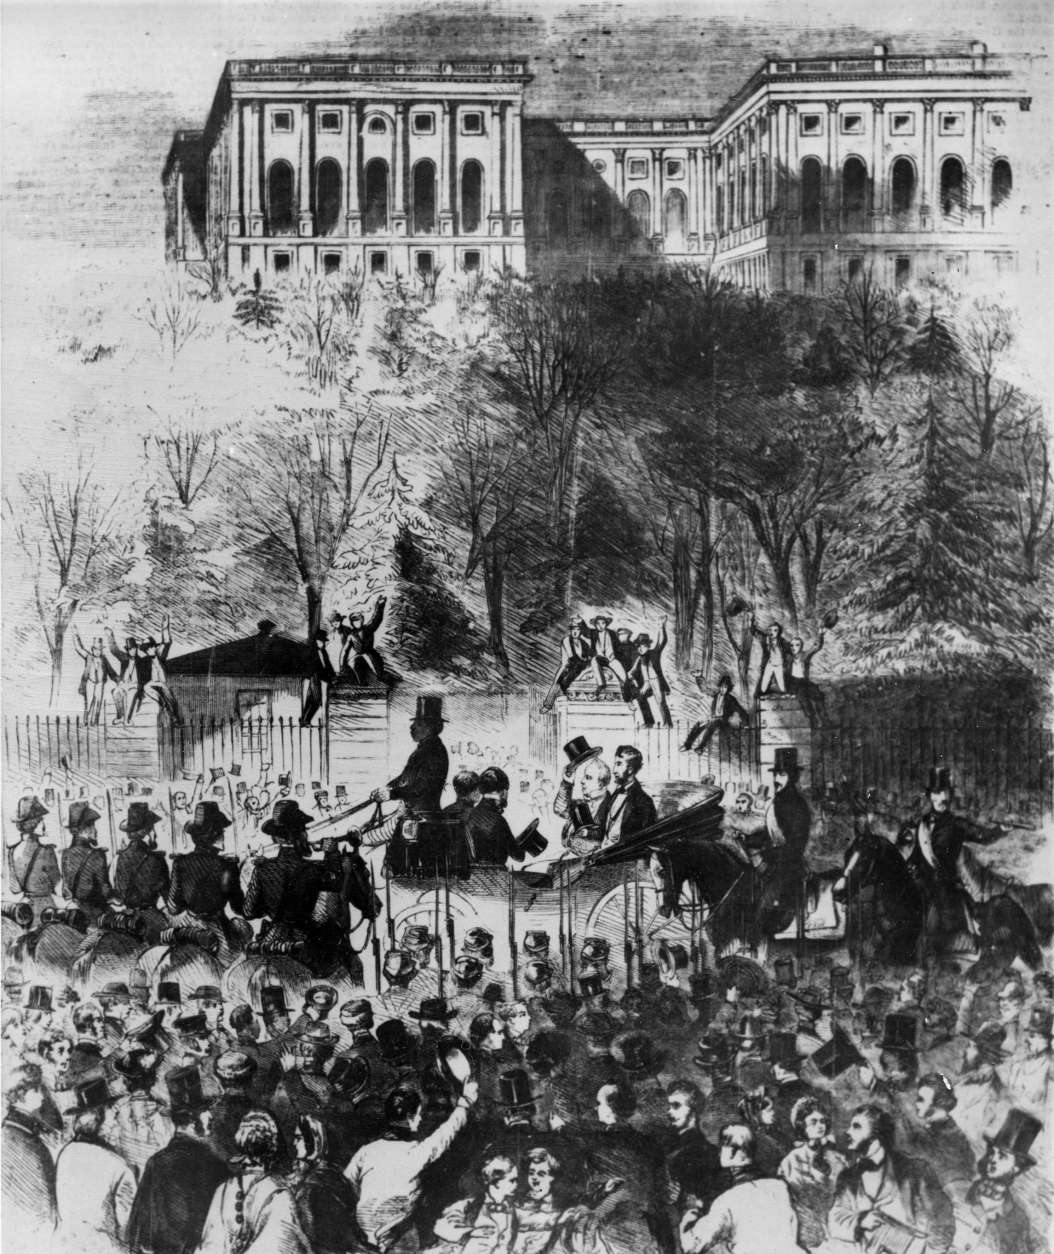 This drawing shows Abraham Lincoln's inaugural procession passing the gates of the Capitol grounds in Washington, D.C., on March 4, 1861.  Retiring President James Buchanan, donning his top hat, is shown seated at Lincoln's side in the open carriage. (AP Photo)